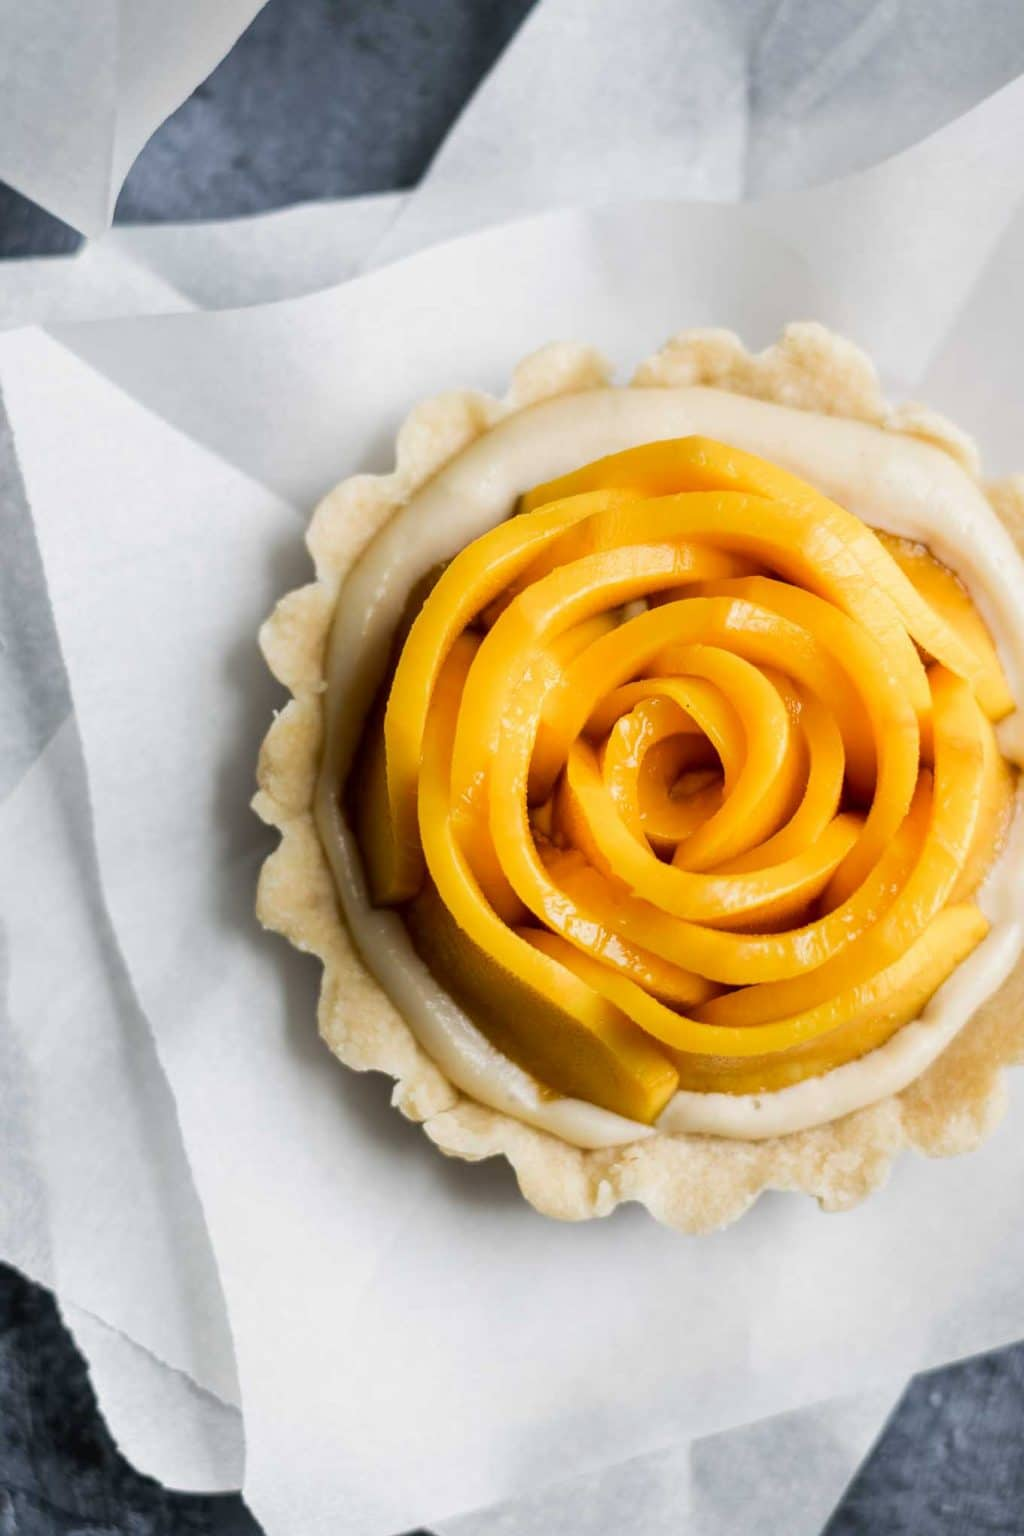 vegan mango tarts with vanilla pastry cream and shortbread crust. Mangoes are cut into rosettes.